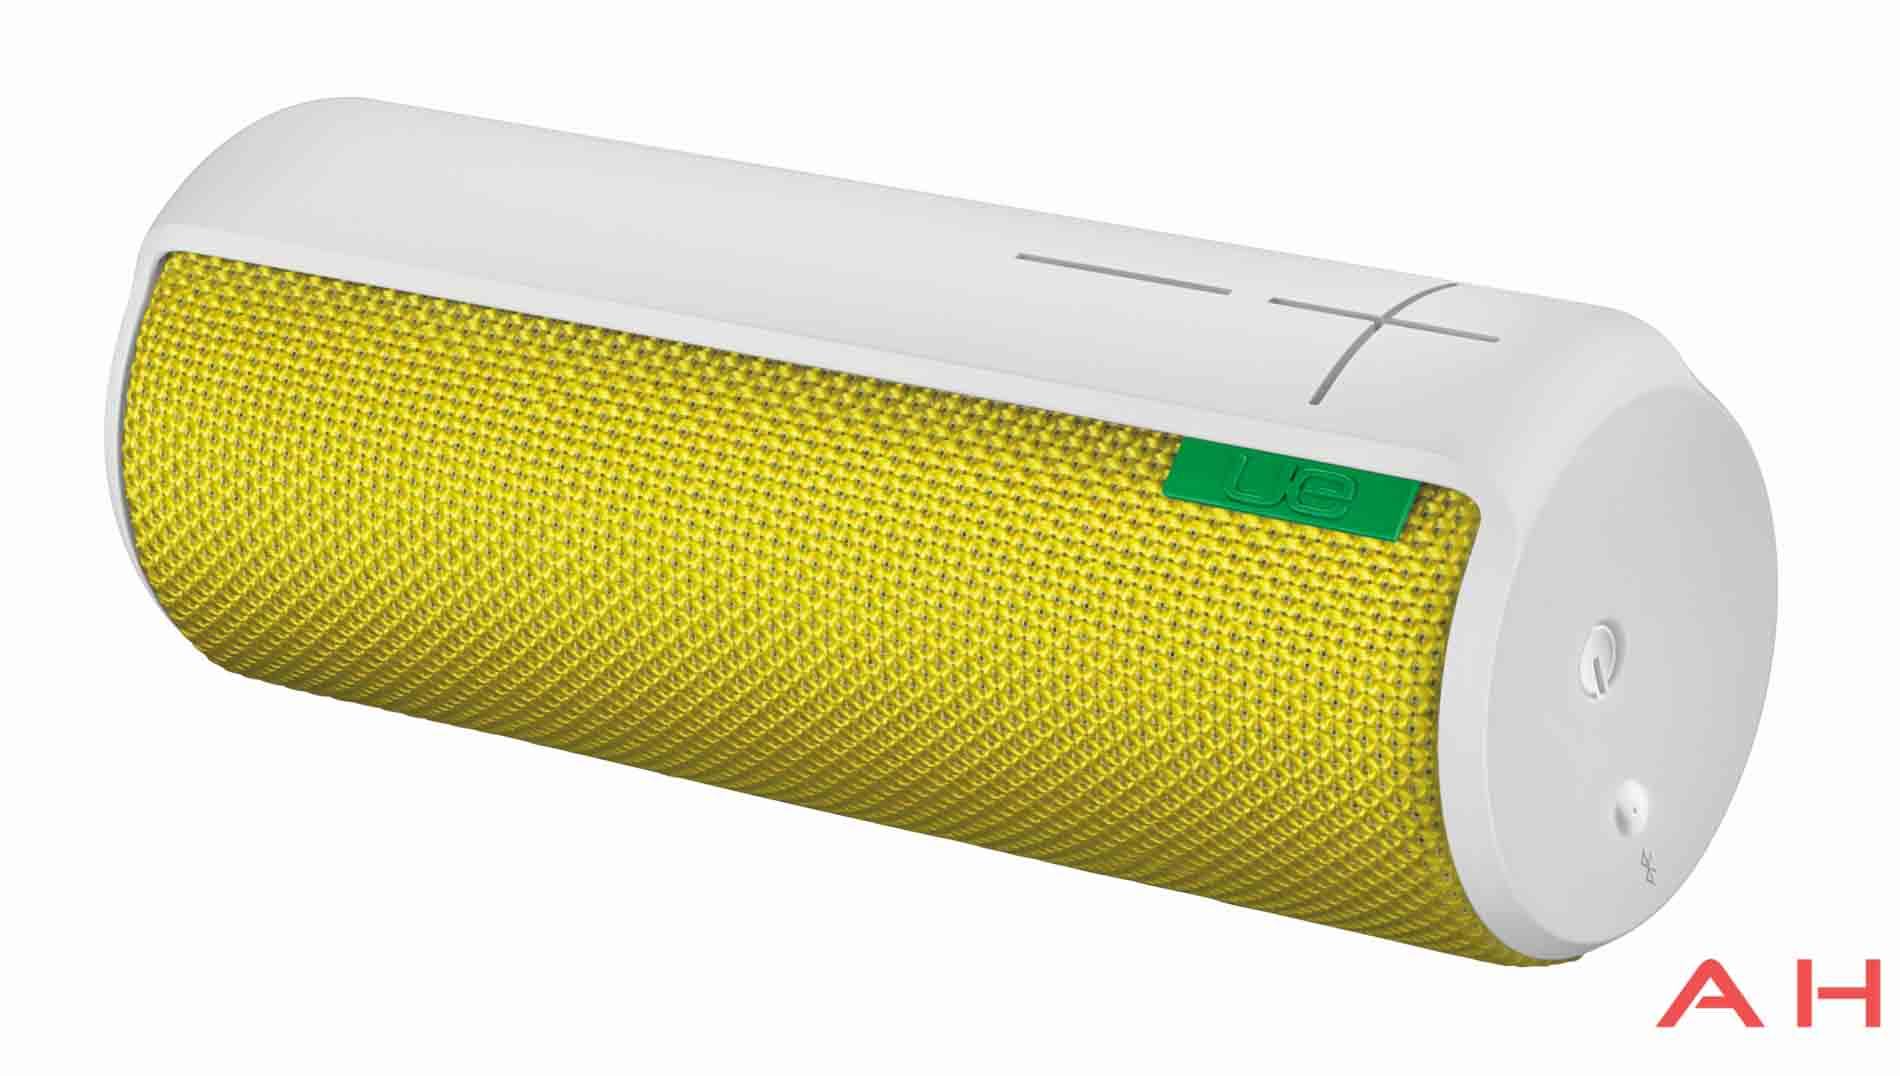 ultimate ears update ue boom speaker with five new colours. Black Bedroom Furniture Sets. Home Design Ideas